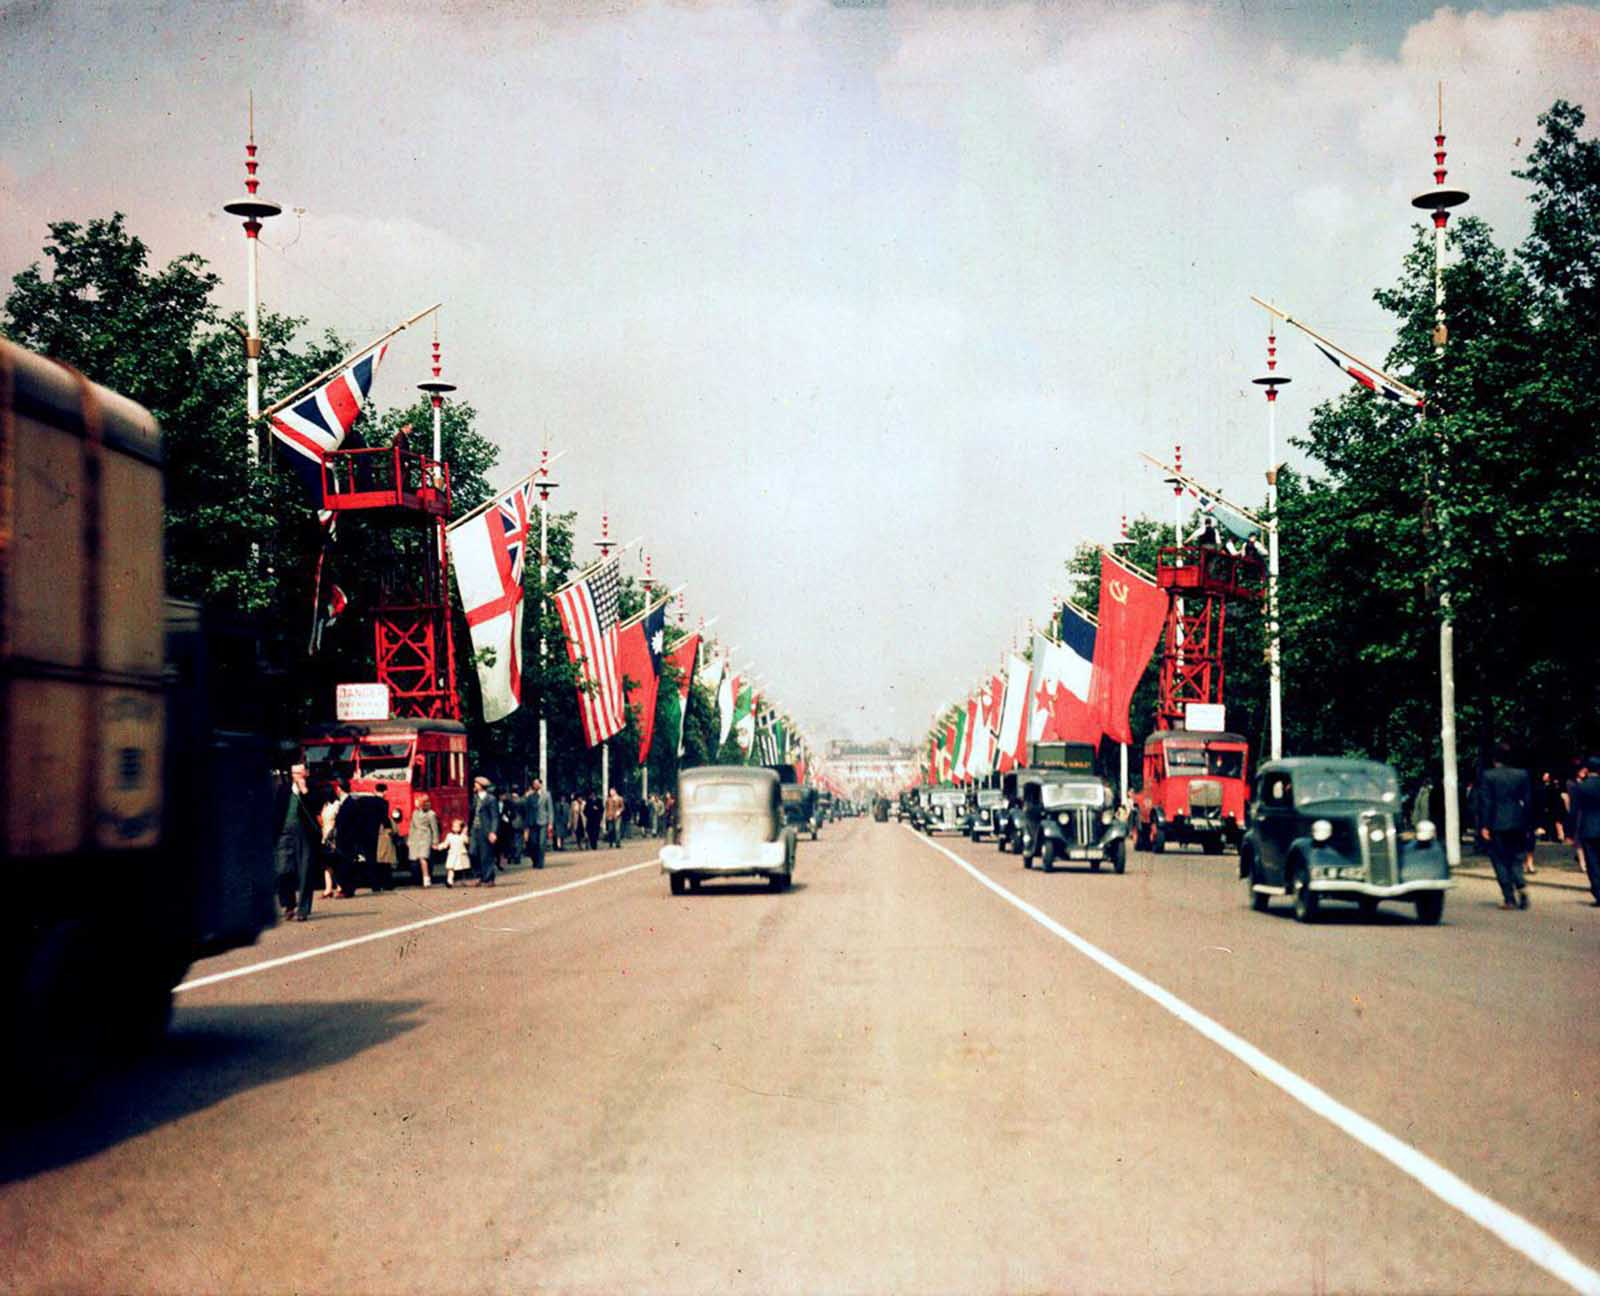 Allied flags are displayed in celebration of victory in Europe. Sept. 3, 1945.